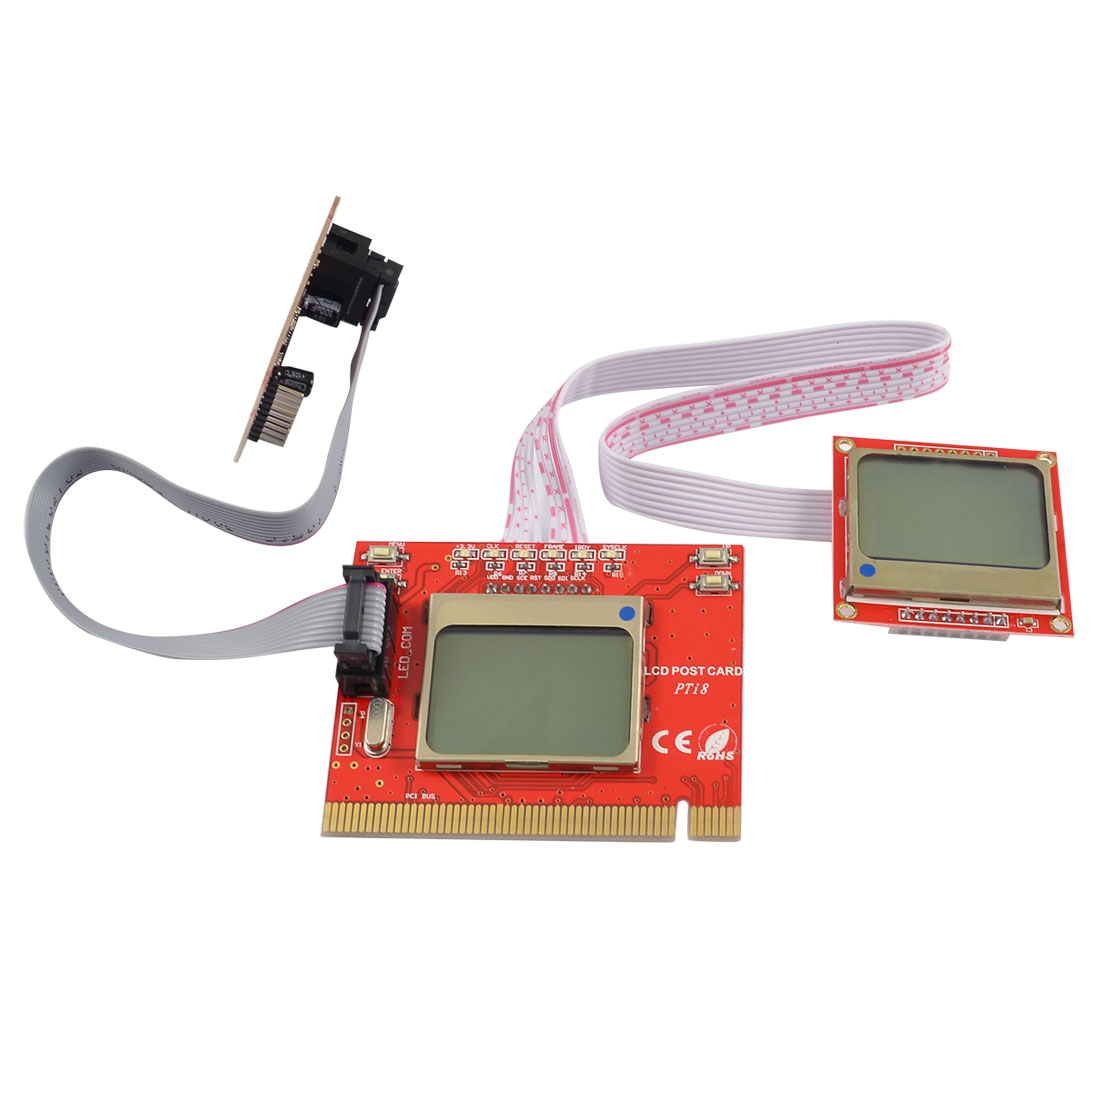 LCD Display PCI Diagnostic Motherboard Analyzer Tester Post Debug Card Red